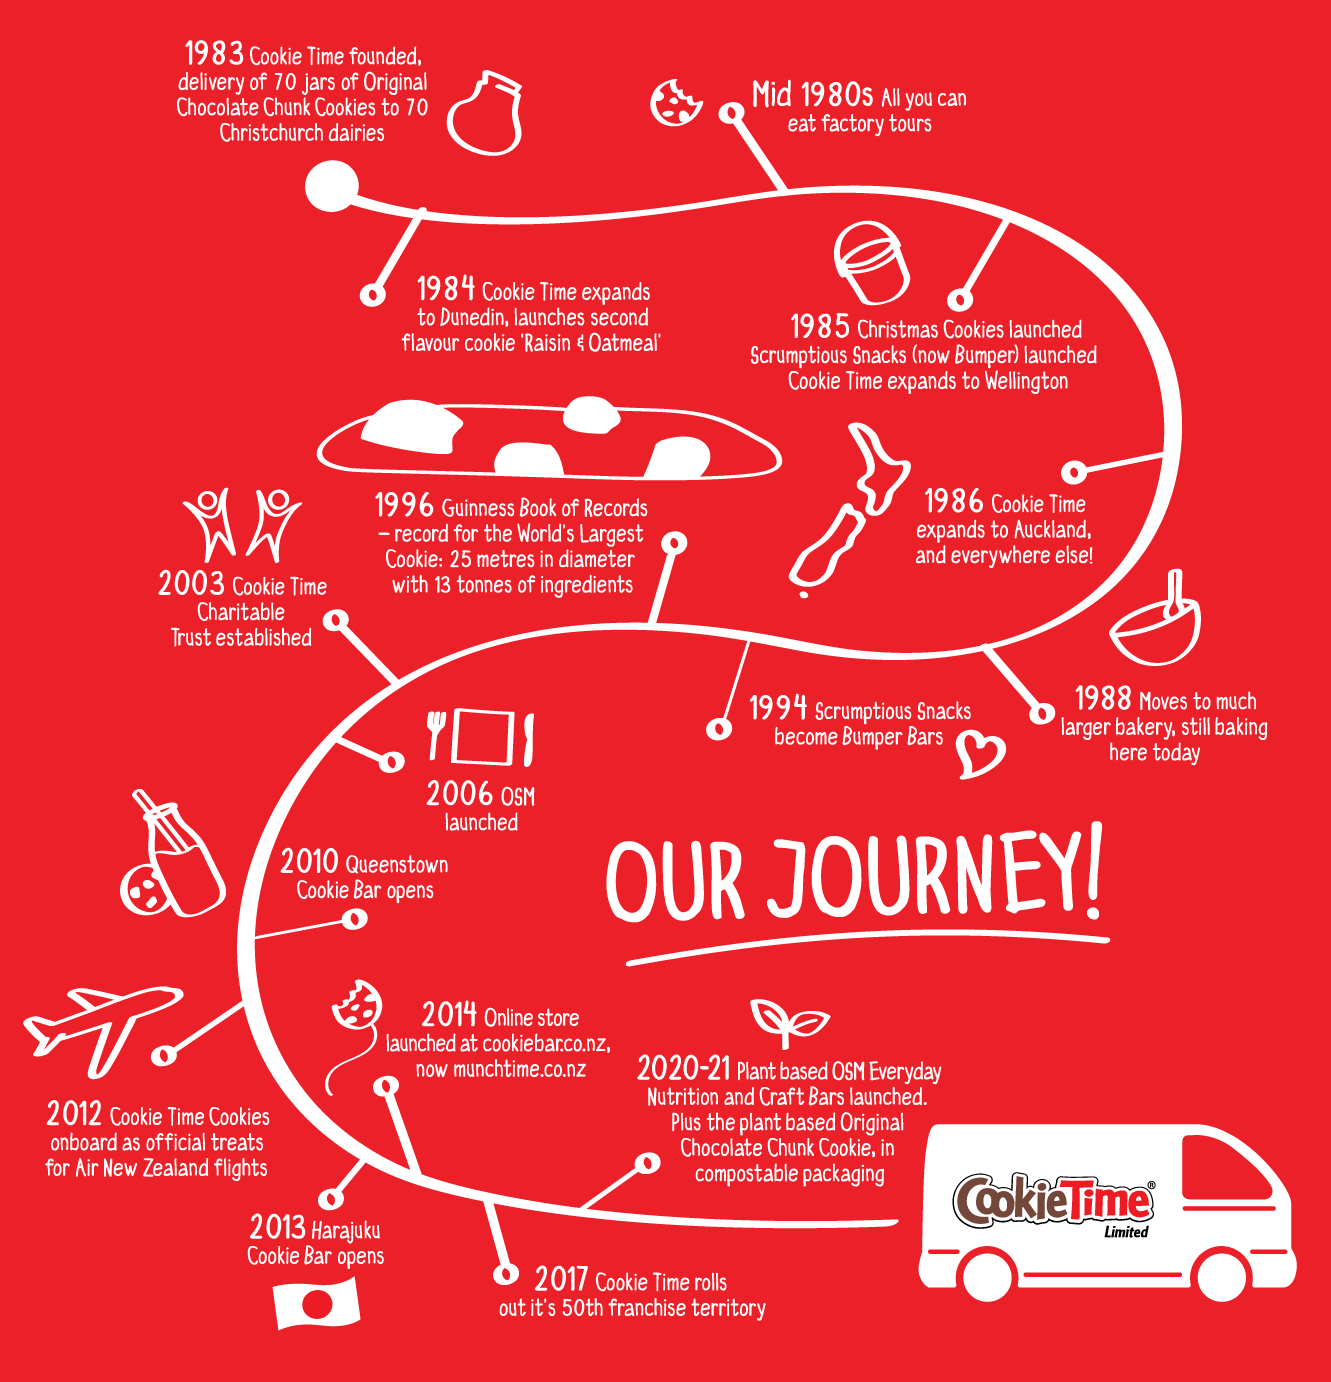 Our Journey